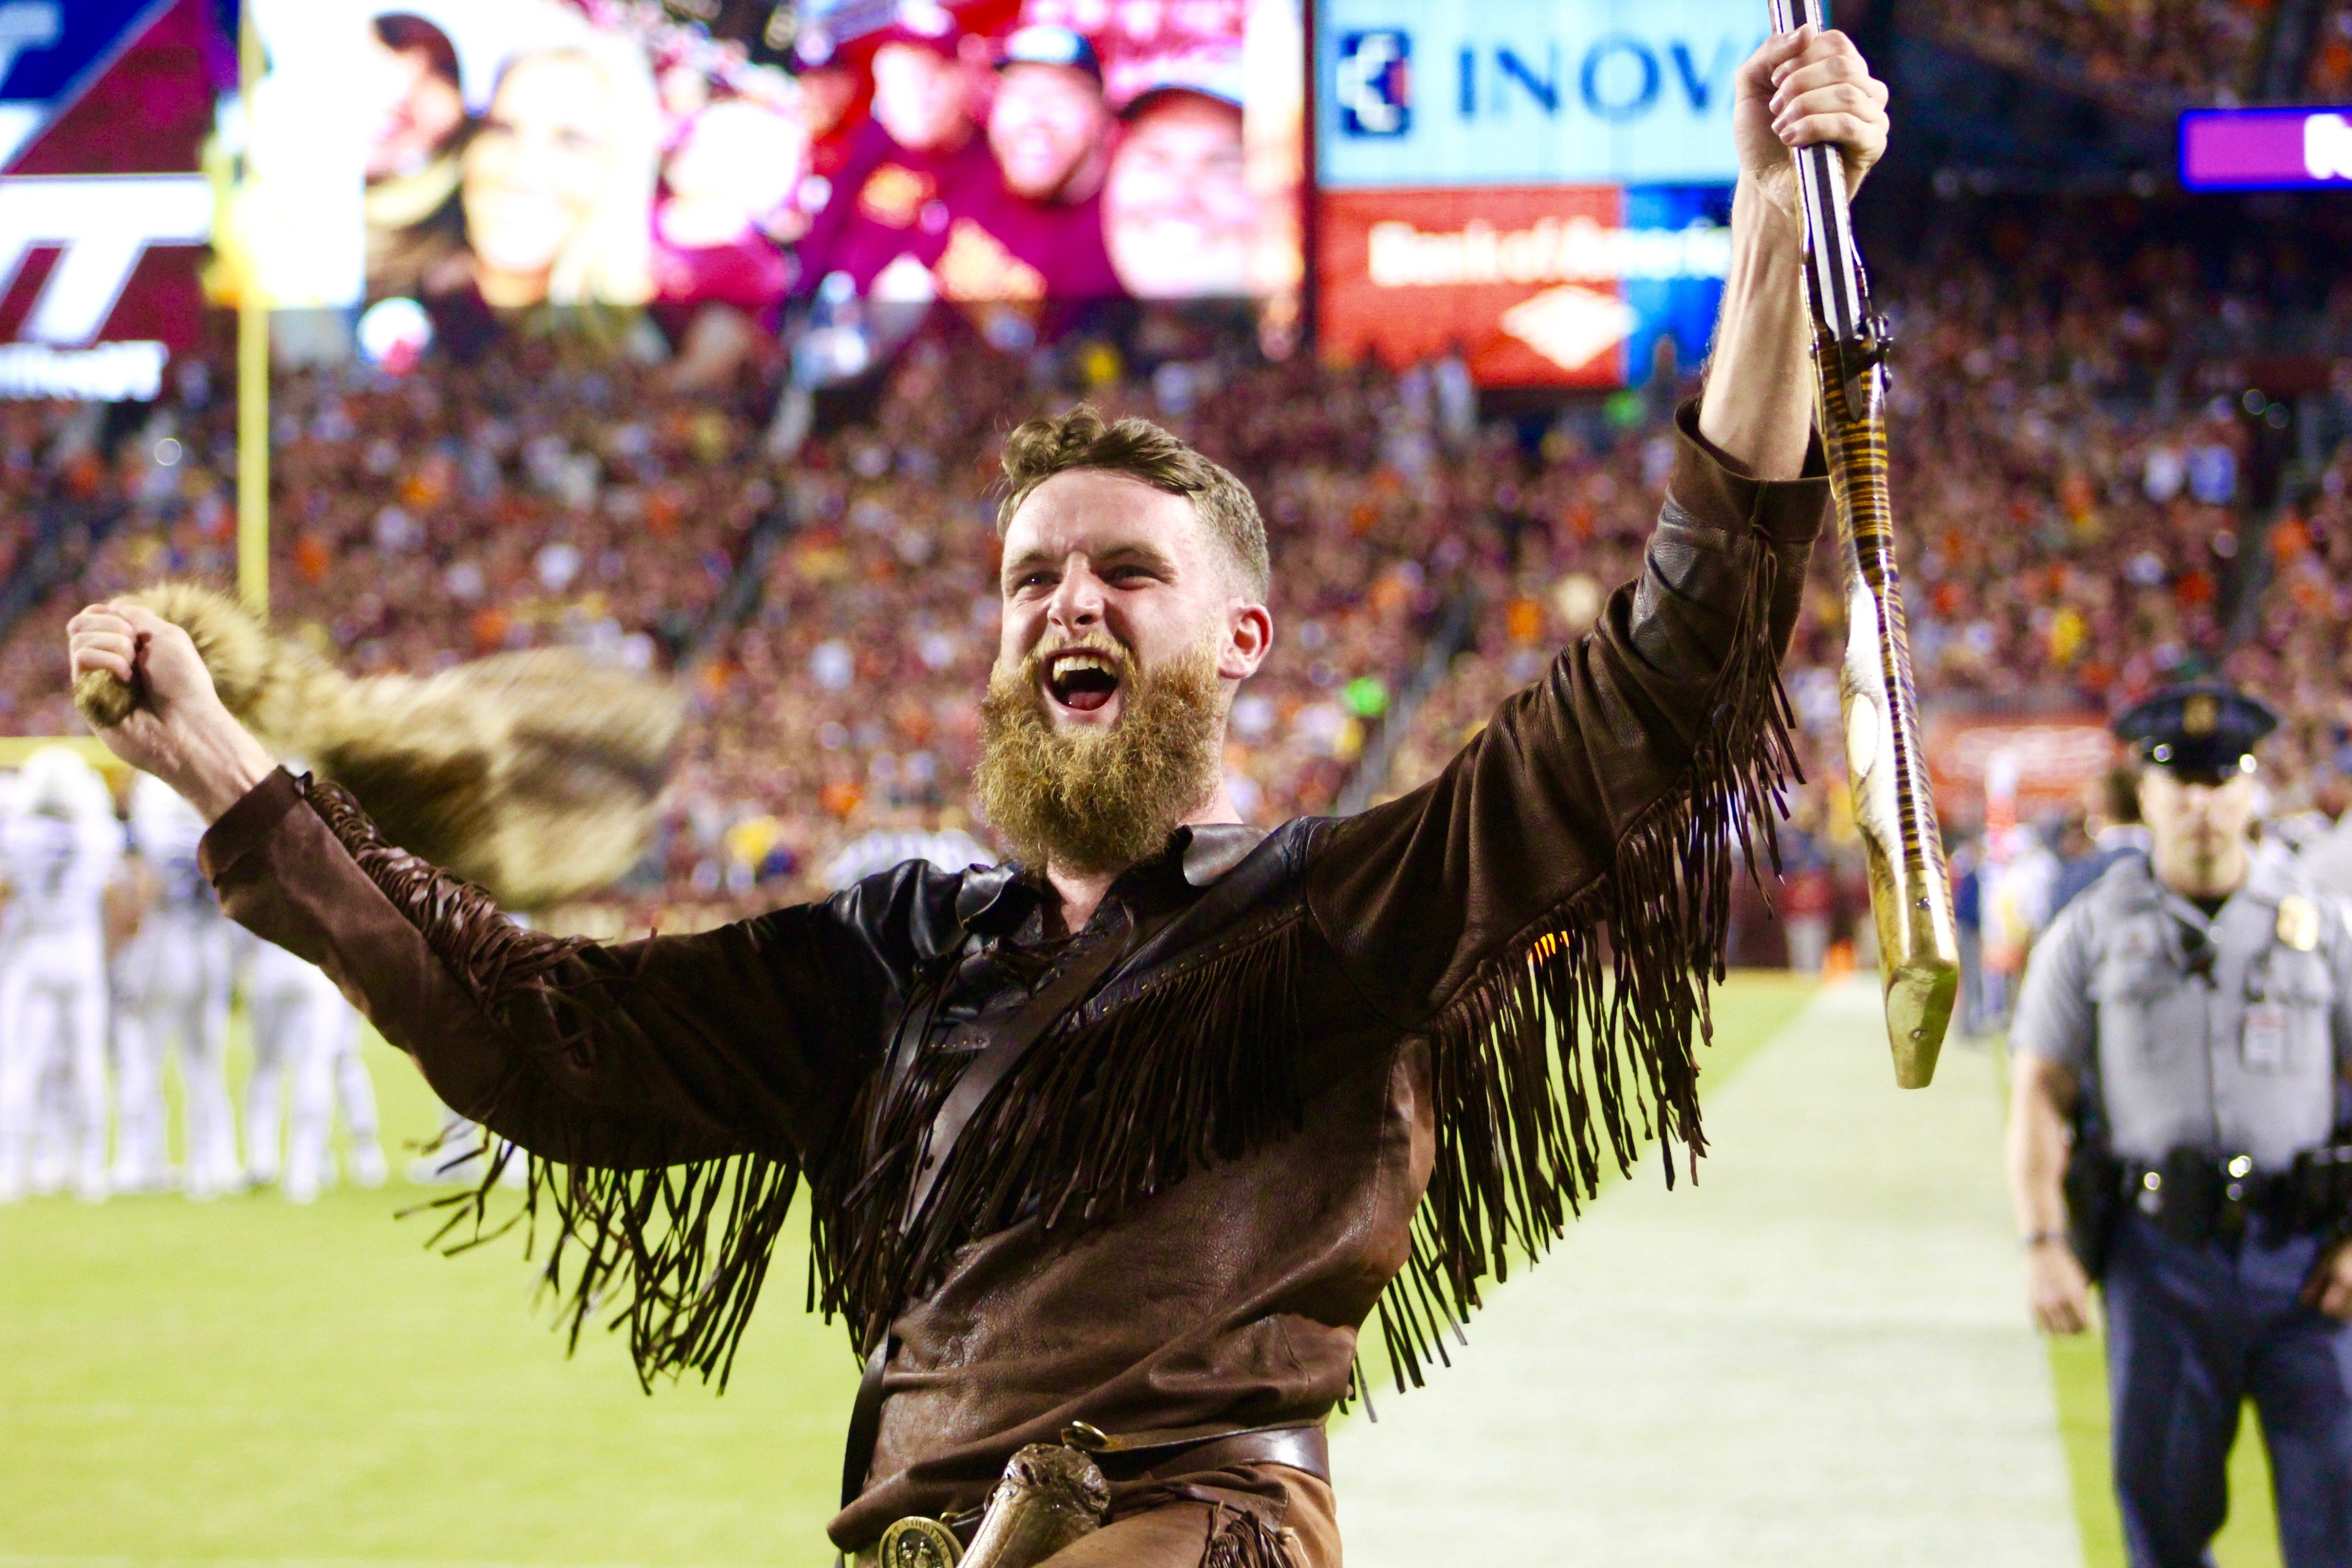 The Mountaineer Mascot celebrates a WVU touchdown at FedEx Field.